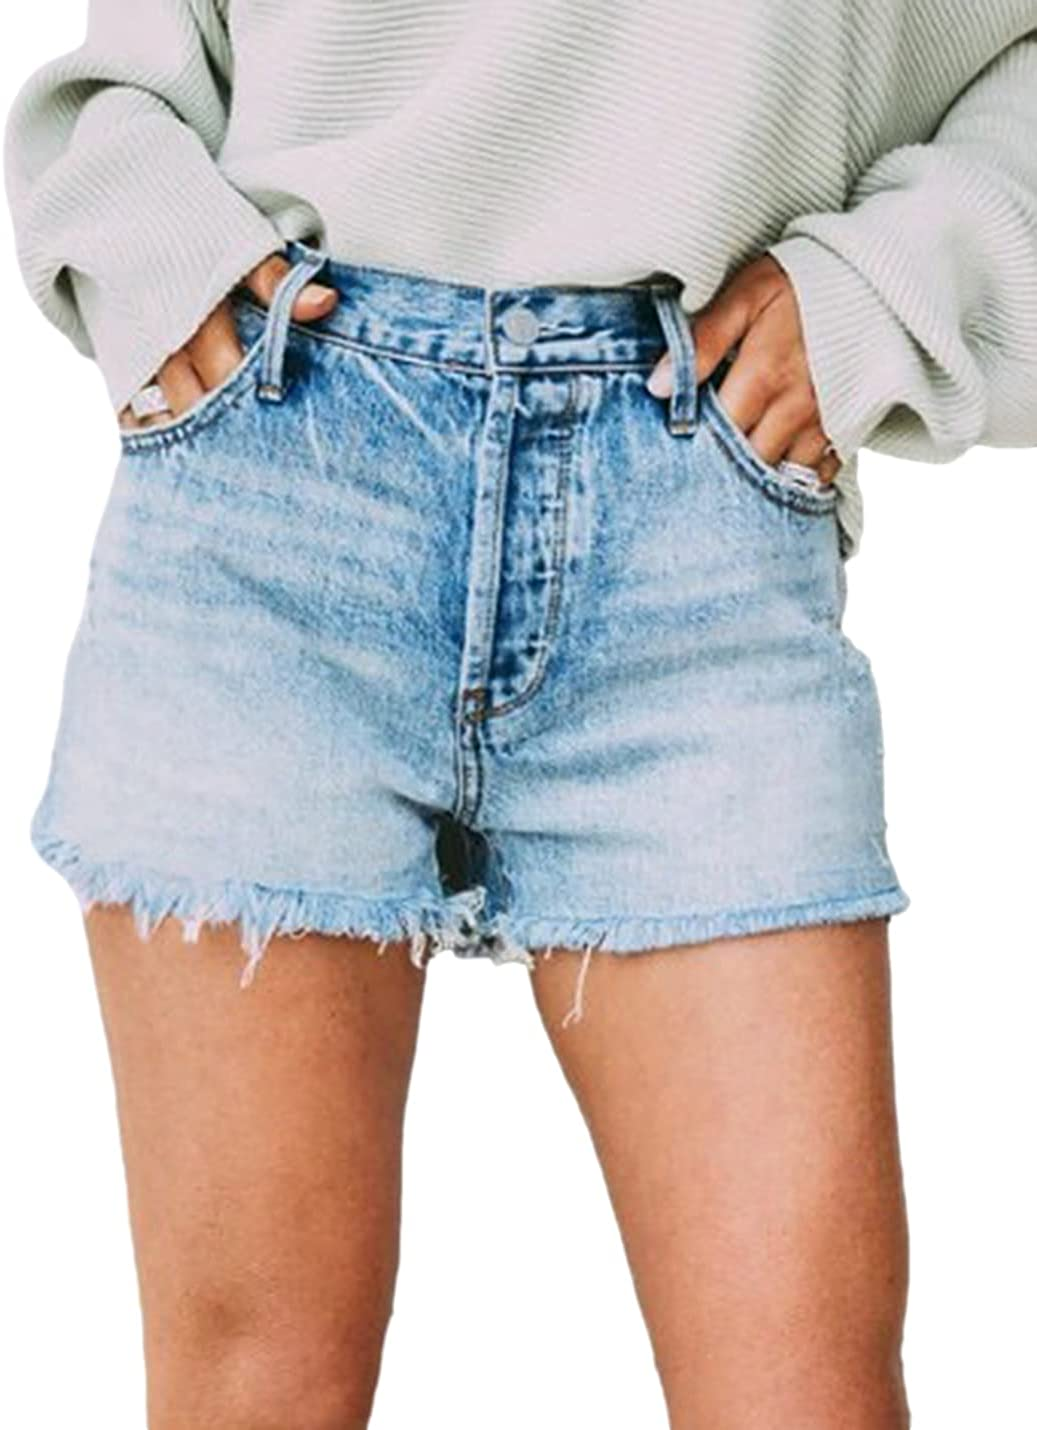 SeekMe Women's Casual High Waisted Side Slit Distressed Frayed Wash Denim Jean Shorts